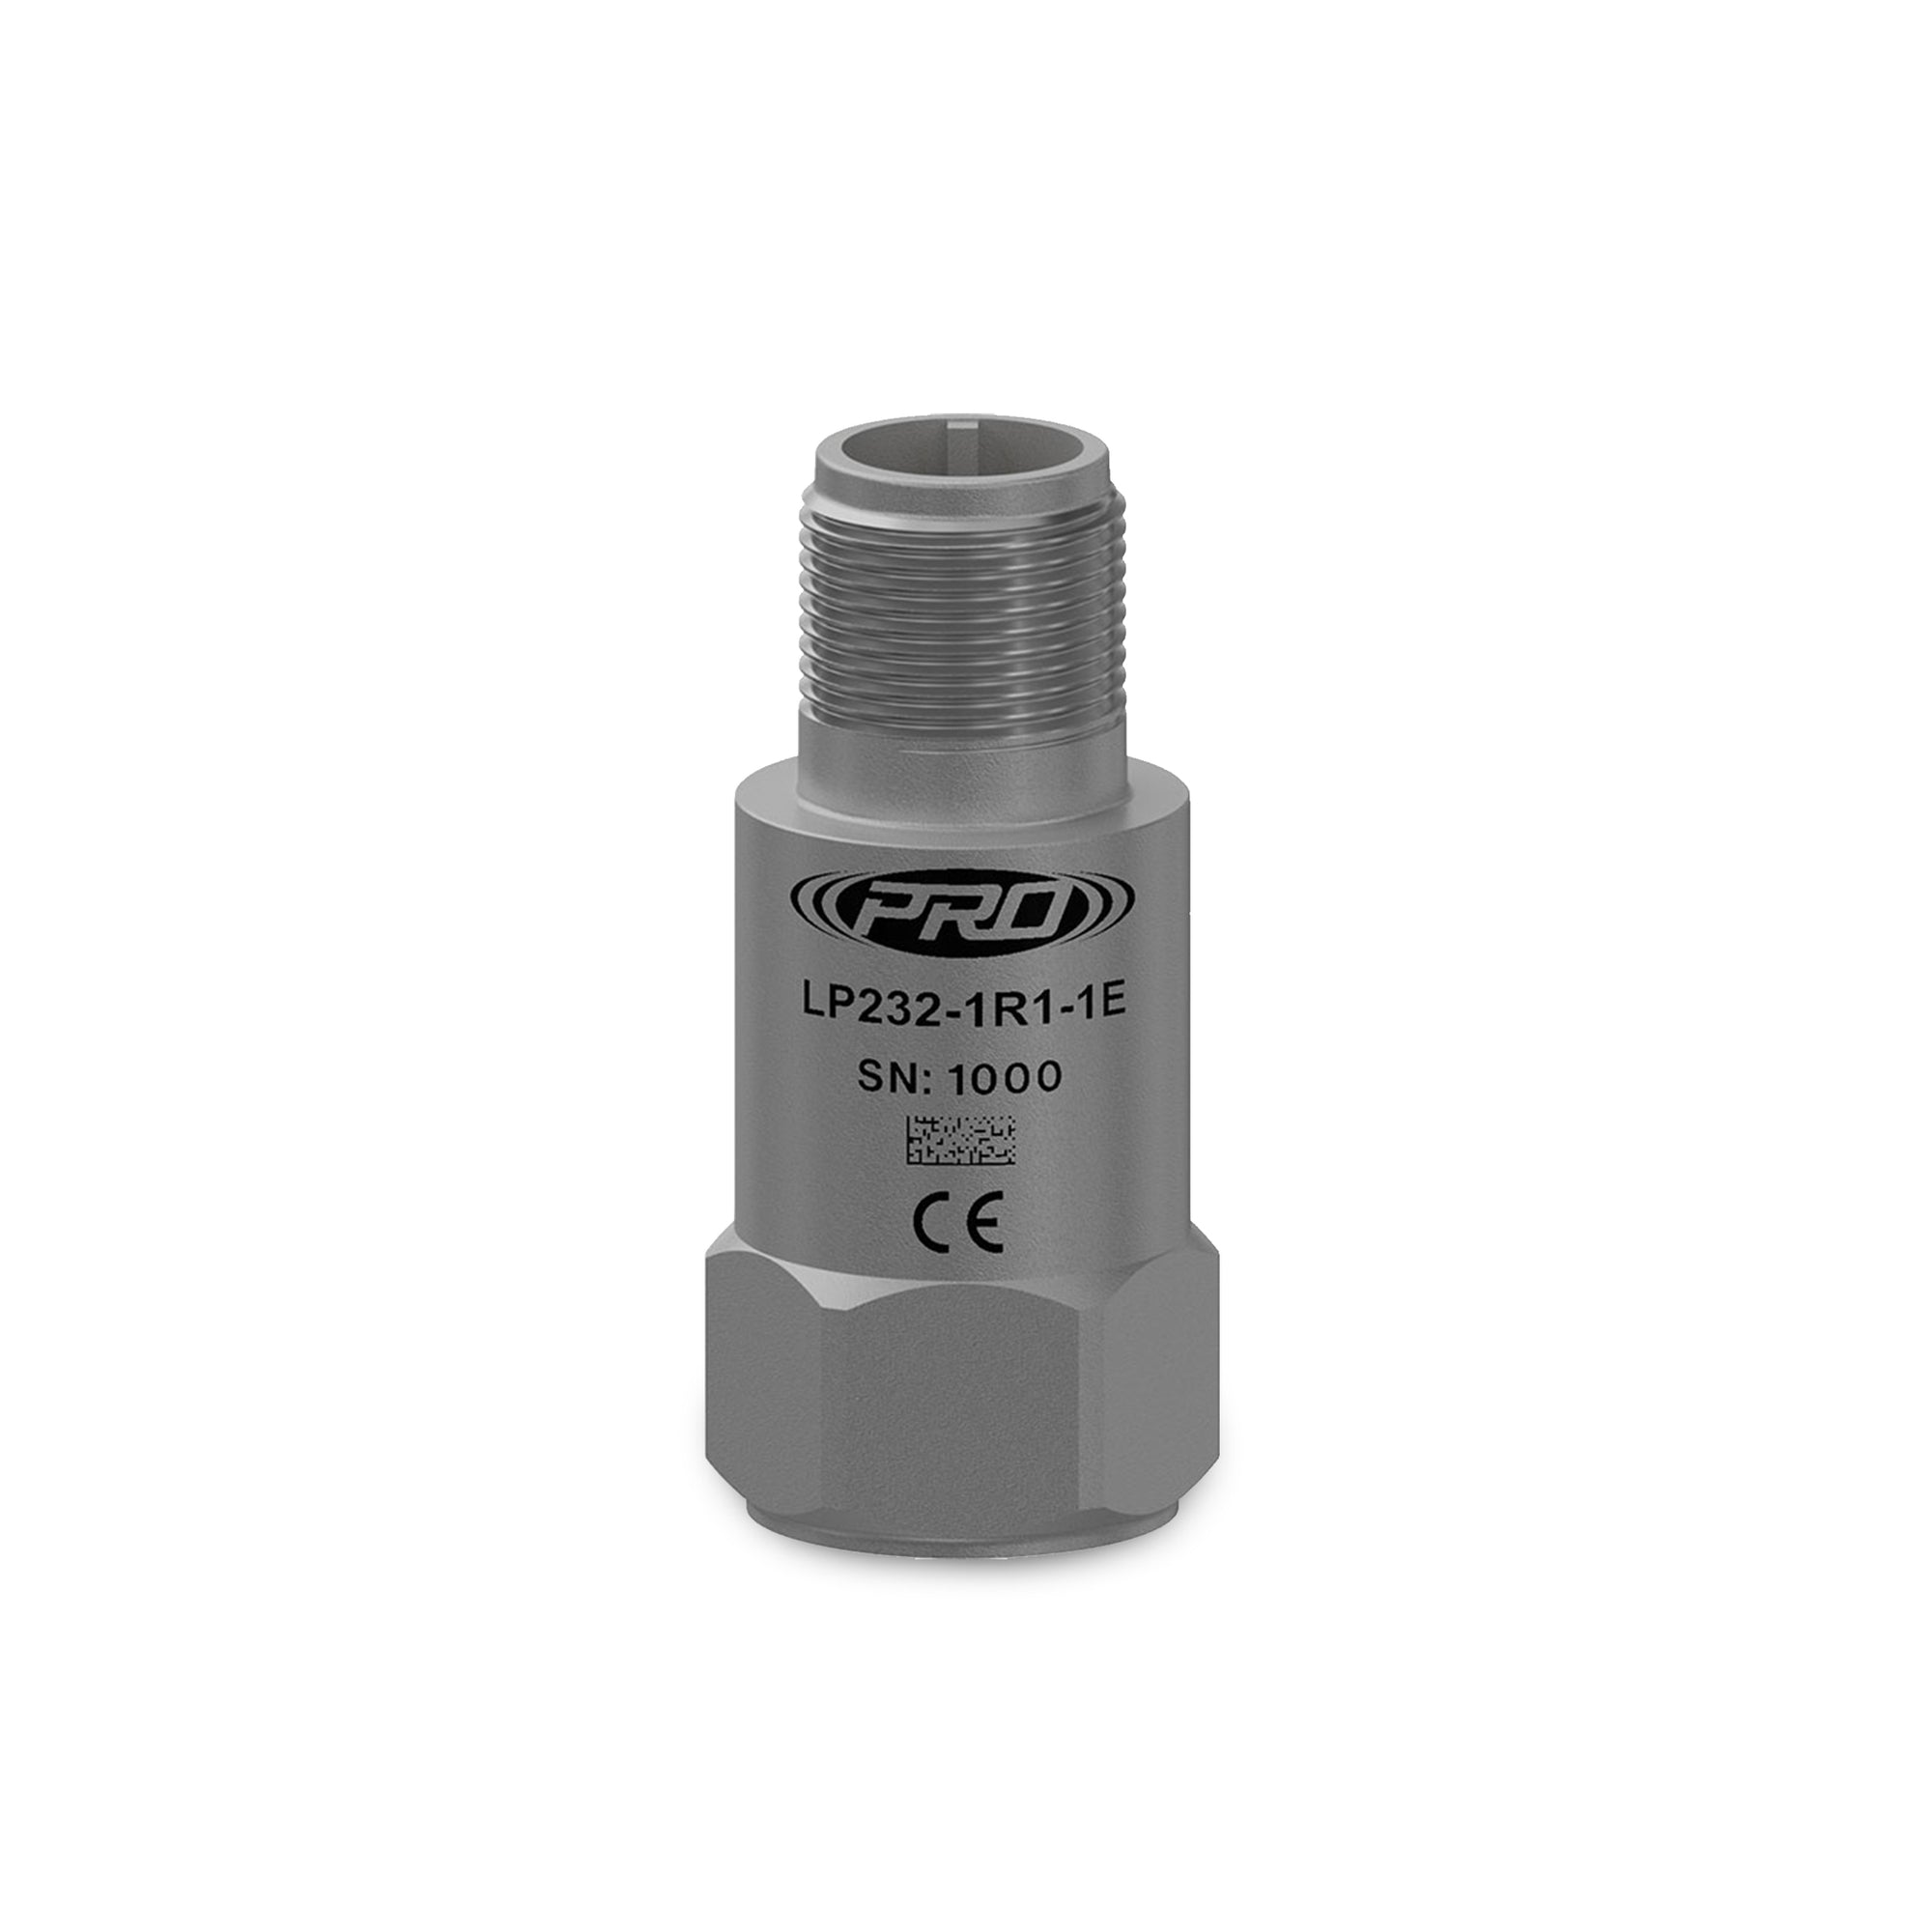 M/LP232-3R1-1E 0-10mm/s FS with temperature output 2.5 to 100°C, 4-20mA vibration transmitter